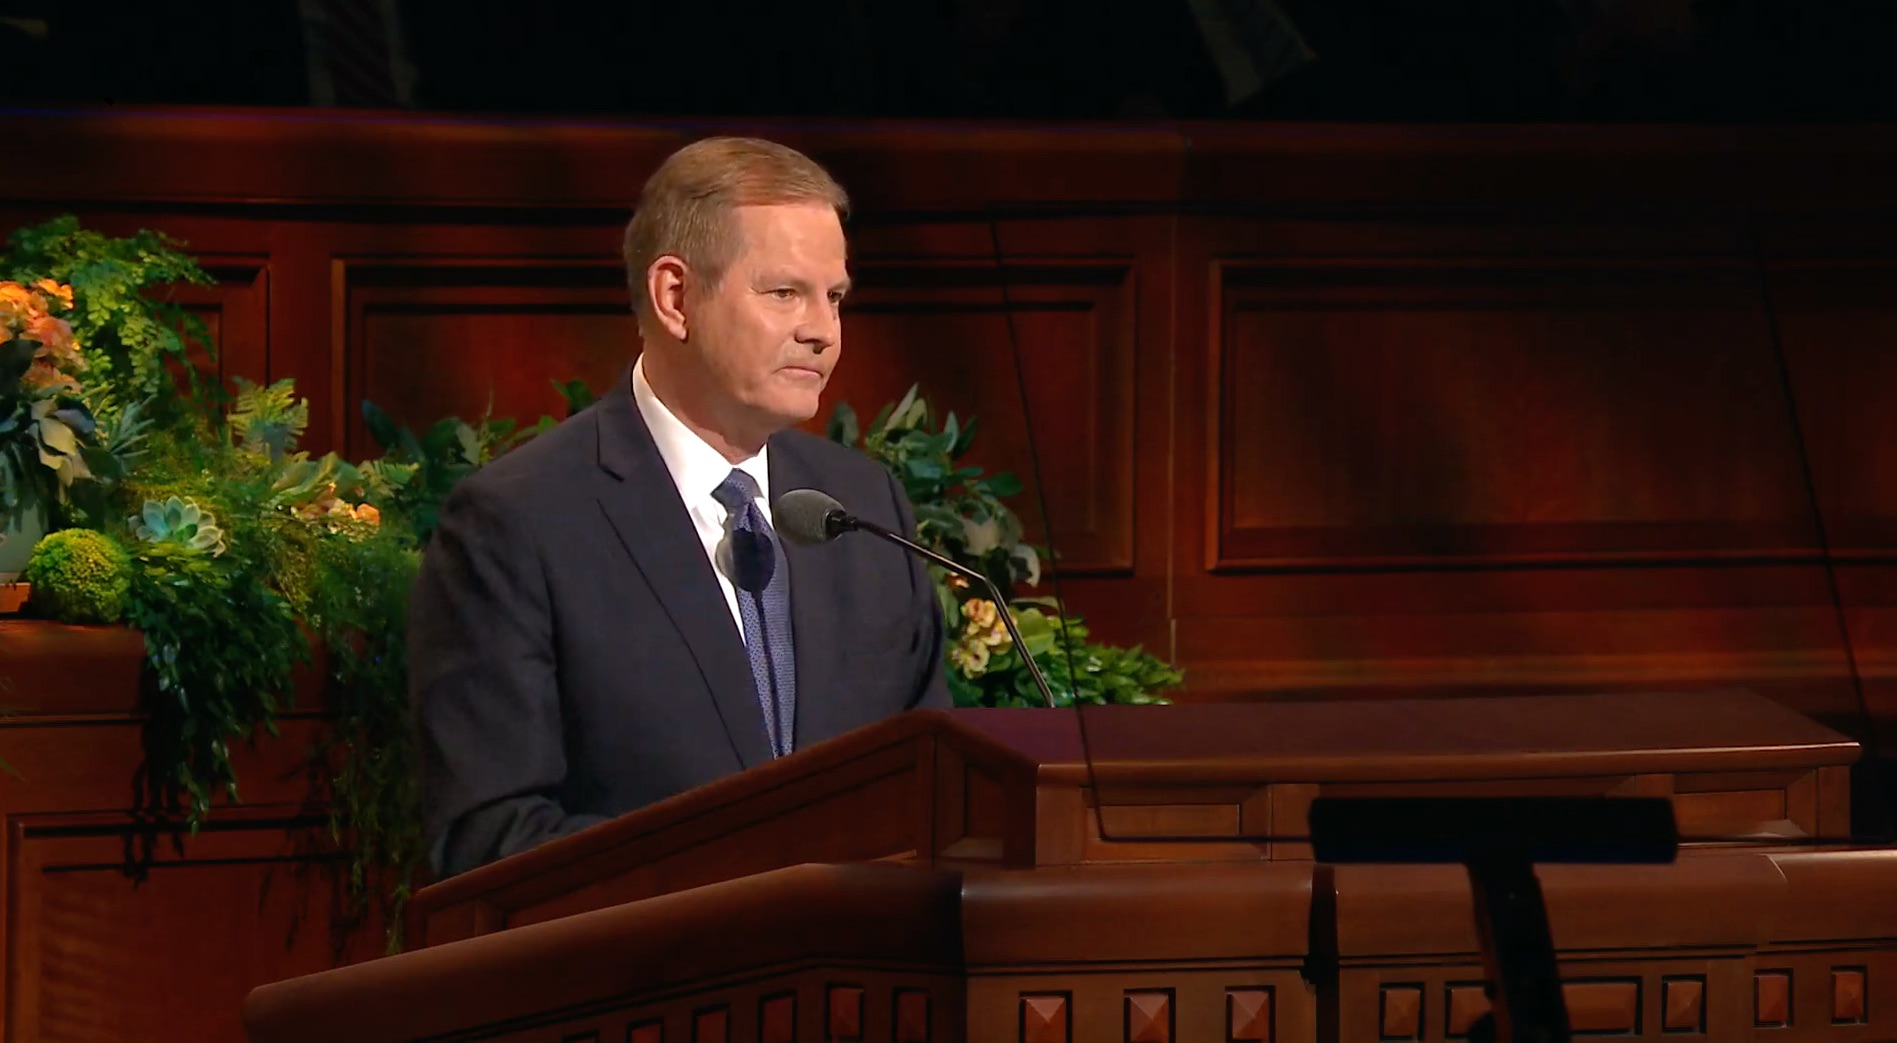 Elder Gary E. Stevenson of the Quorum of the Twelve Apostles gives his address during the priesthood session of the 189th Annual General Conference on April 6, 2019.